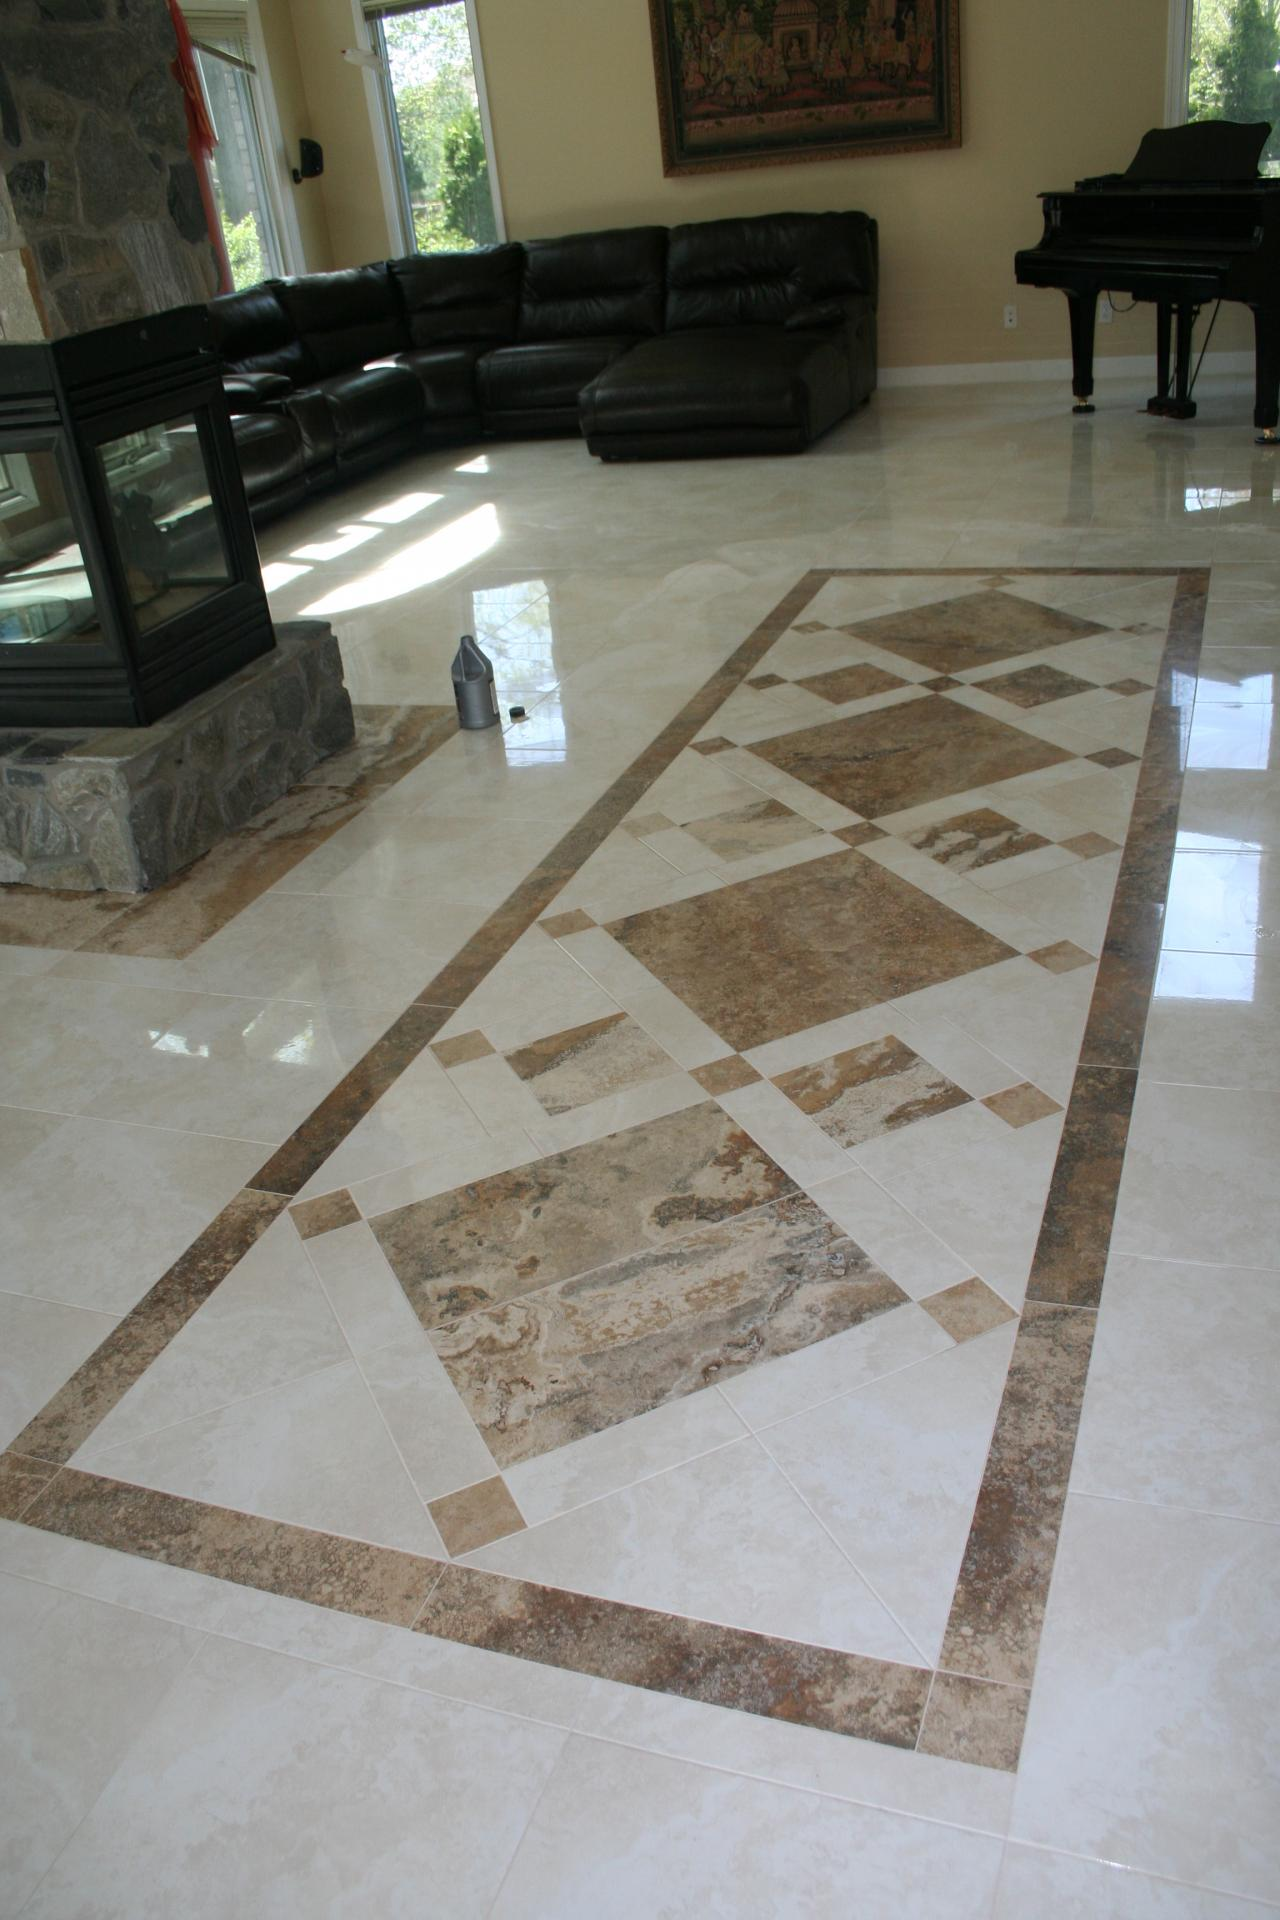 Nest homes construction floor and wall tile designs custom travertine inlay travertine custom design tile dailygadgetfo Image collections